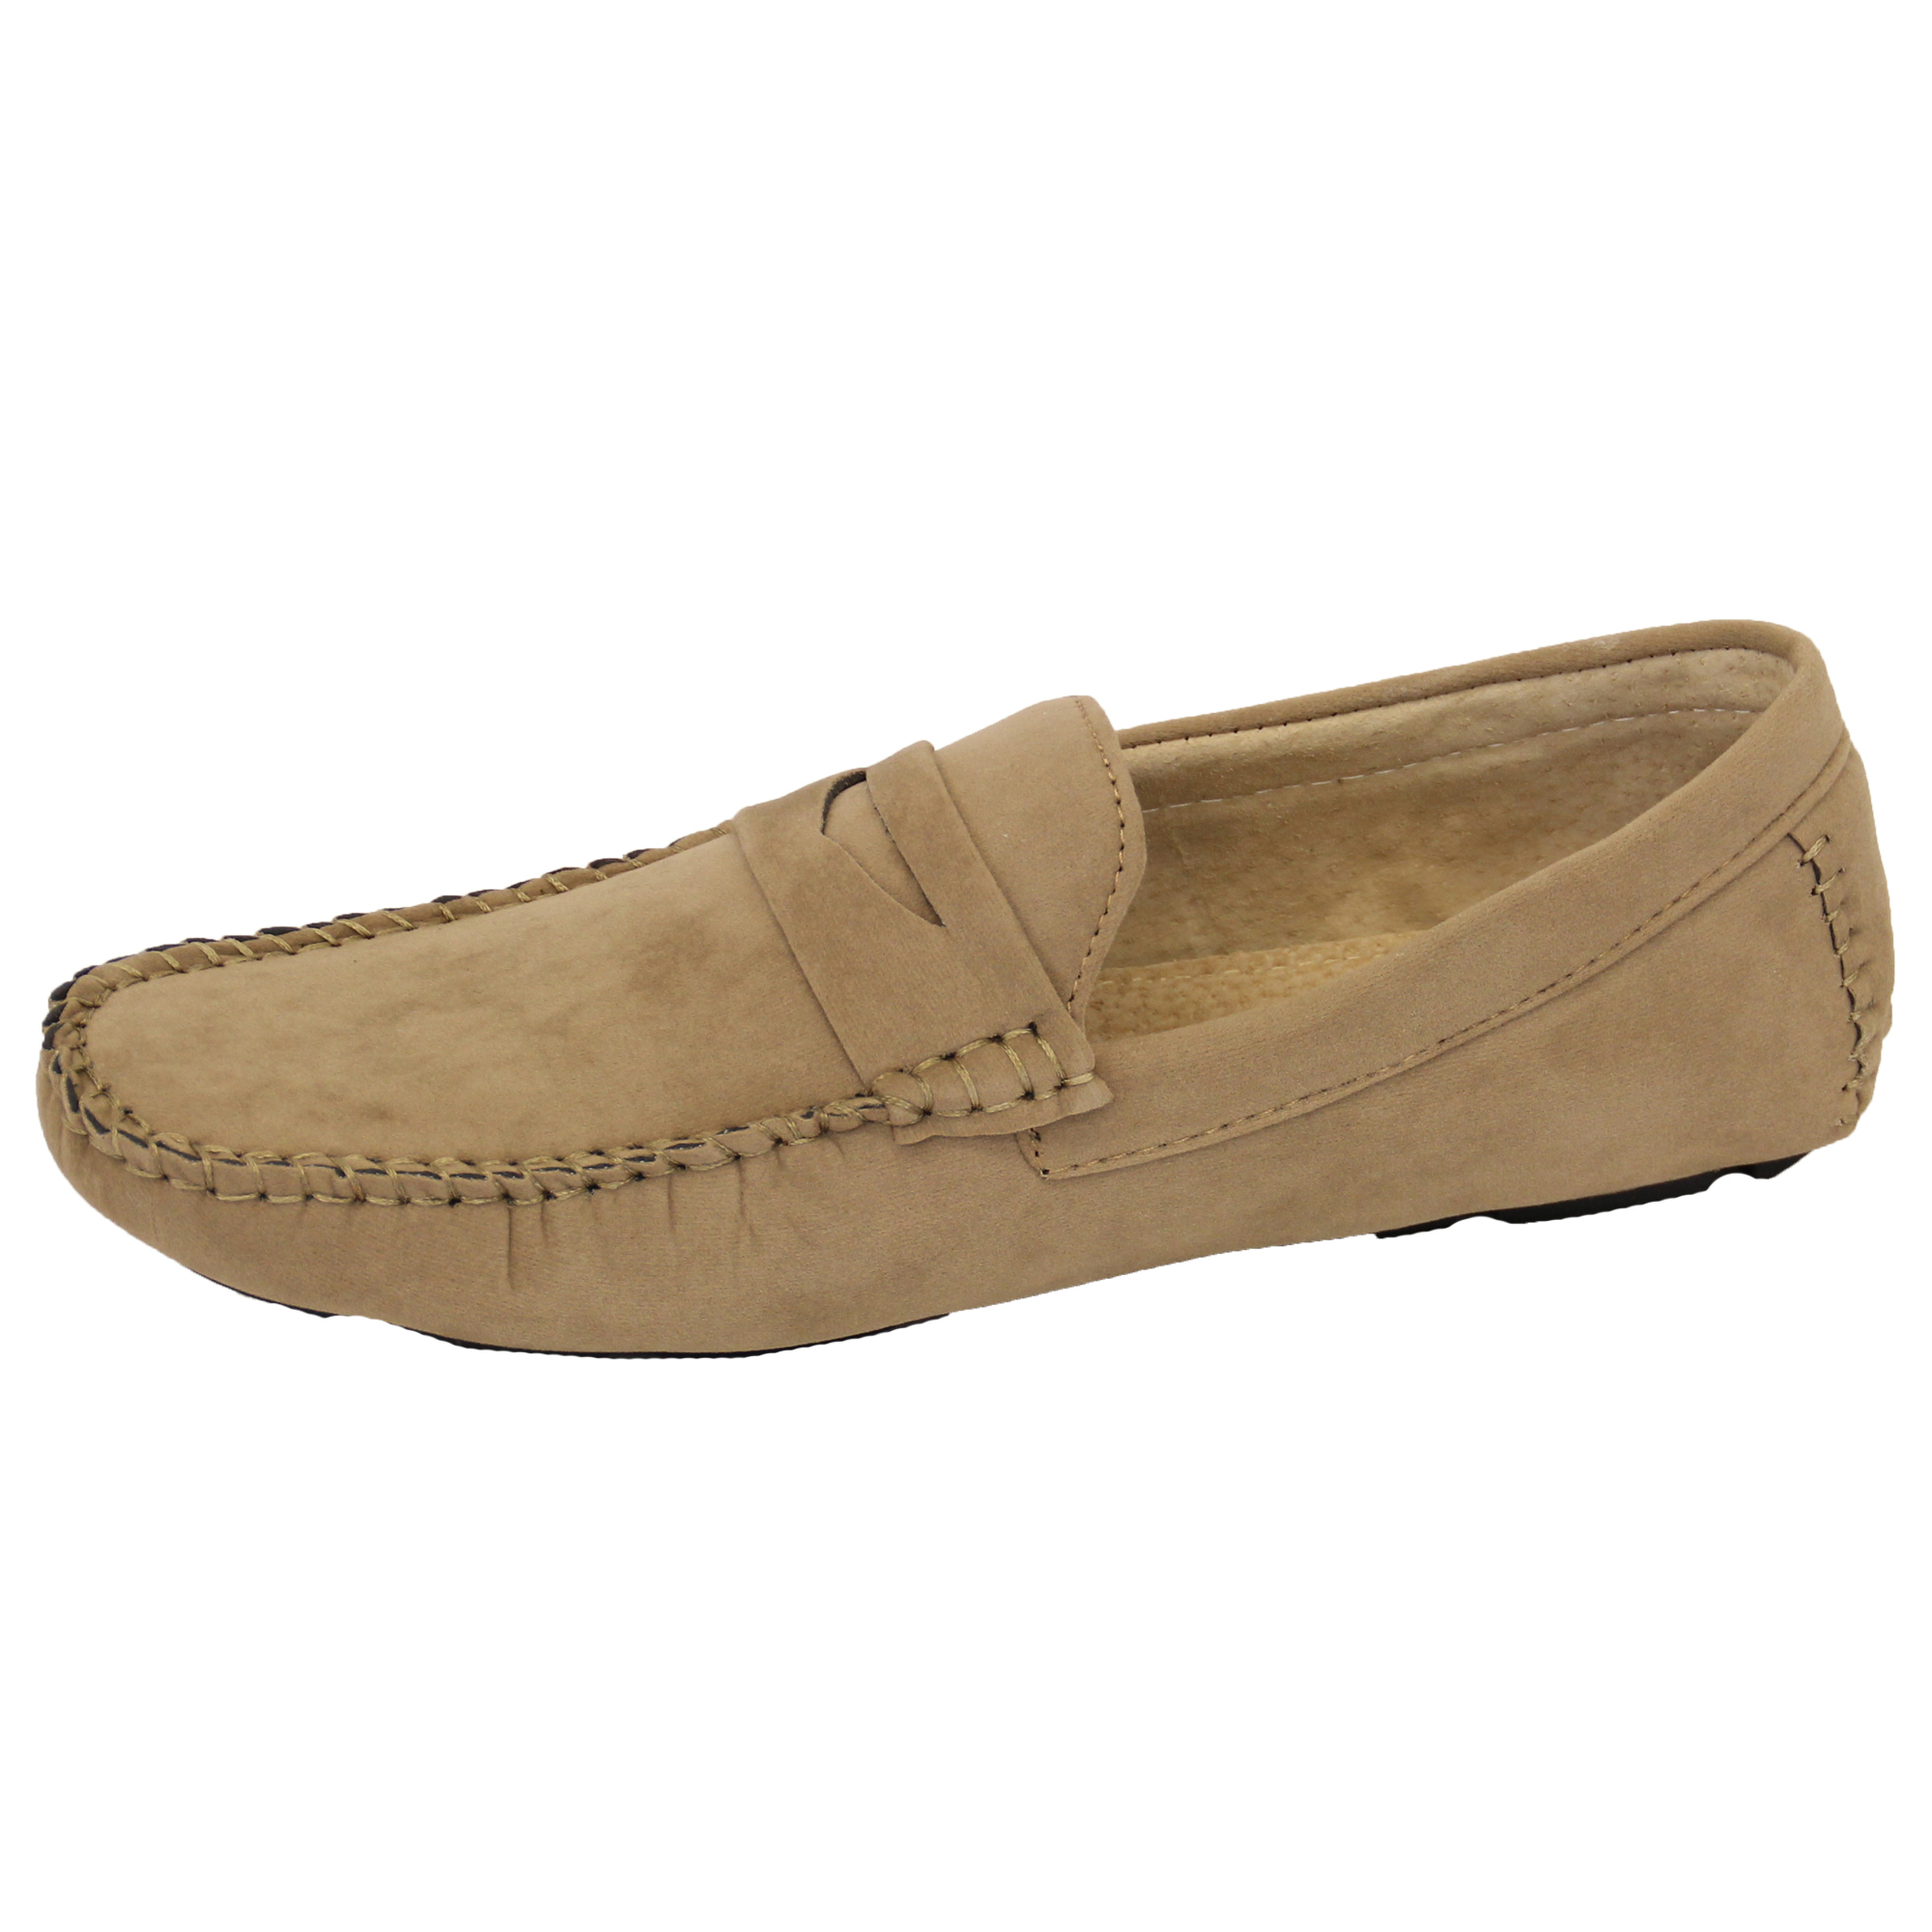 Mens-Moccasins-Suede-Leather-Look-Shoes-Boat-Slip-On-Tassel-Loafers-Smart-Formal thumbnail 3